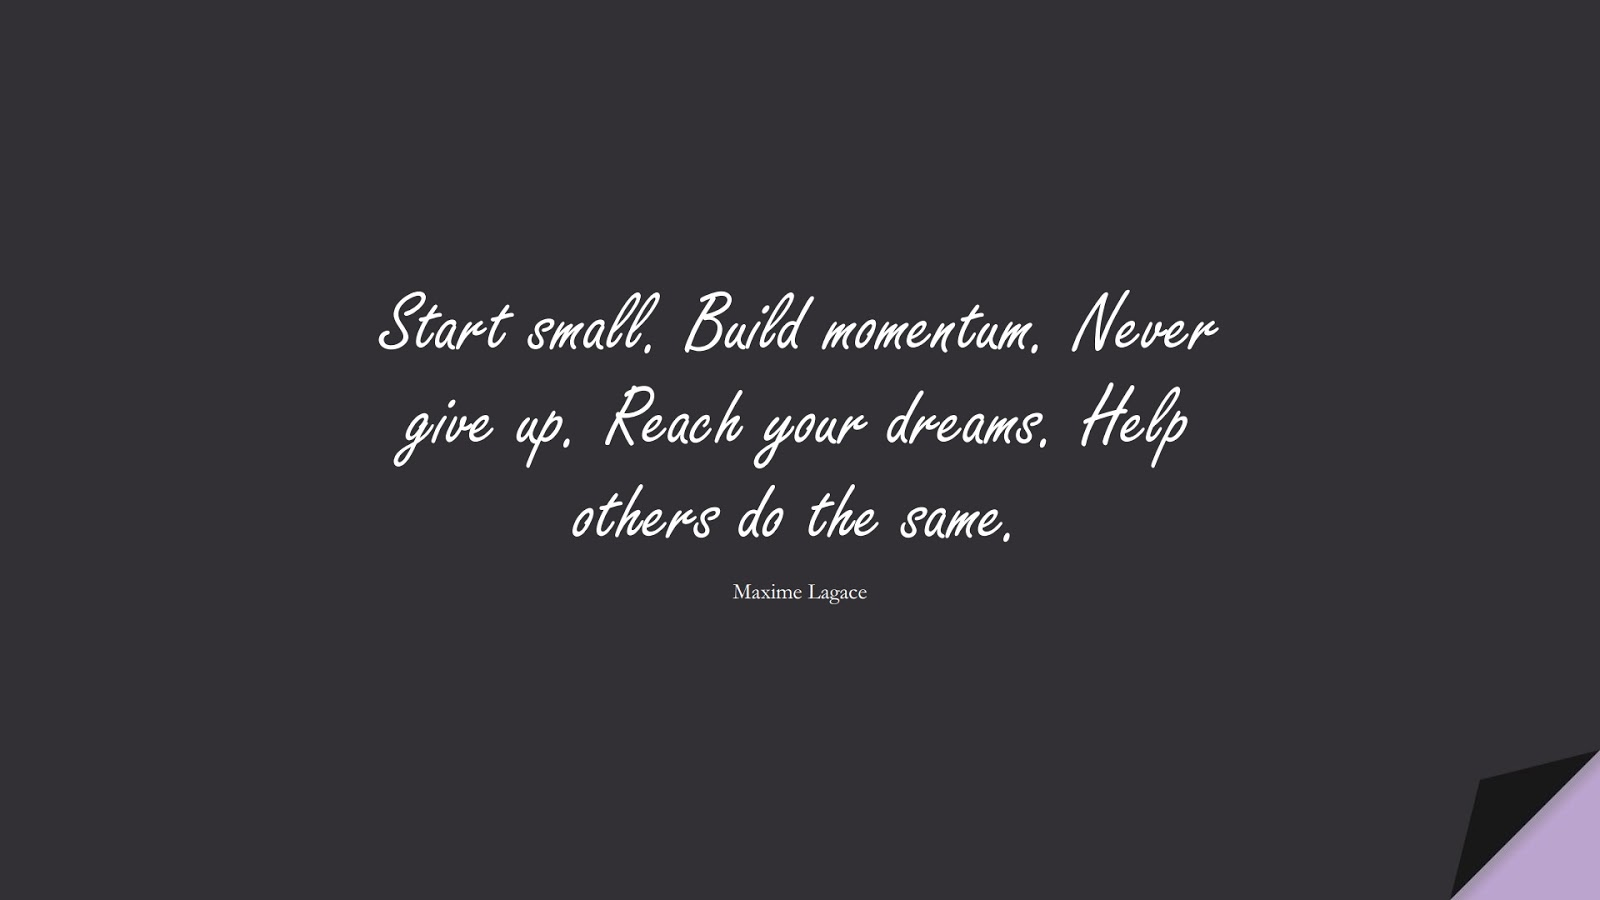 Start small. Build momentum. Never give up. Reach your dreams. Help others do the same. (Maxime Lagace);  #EncouragingQuotes